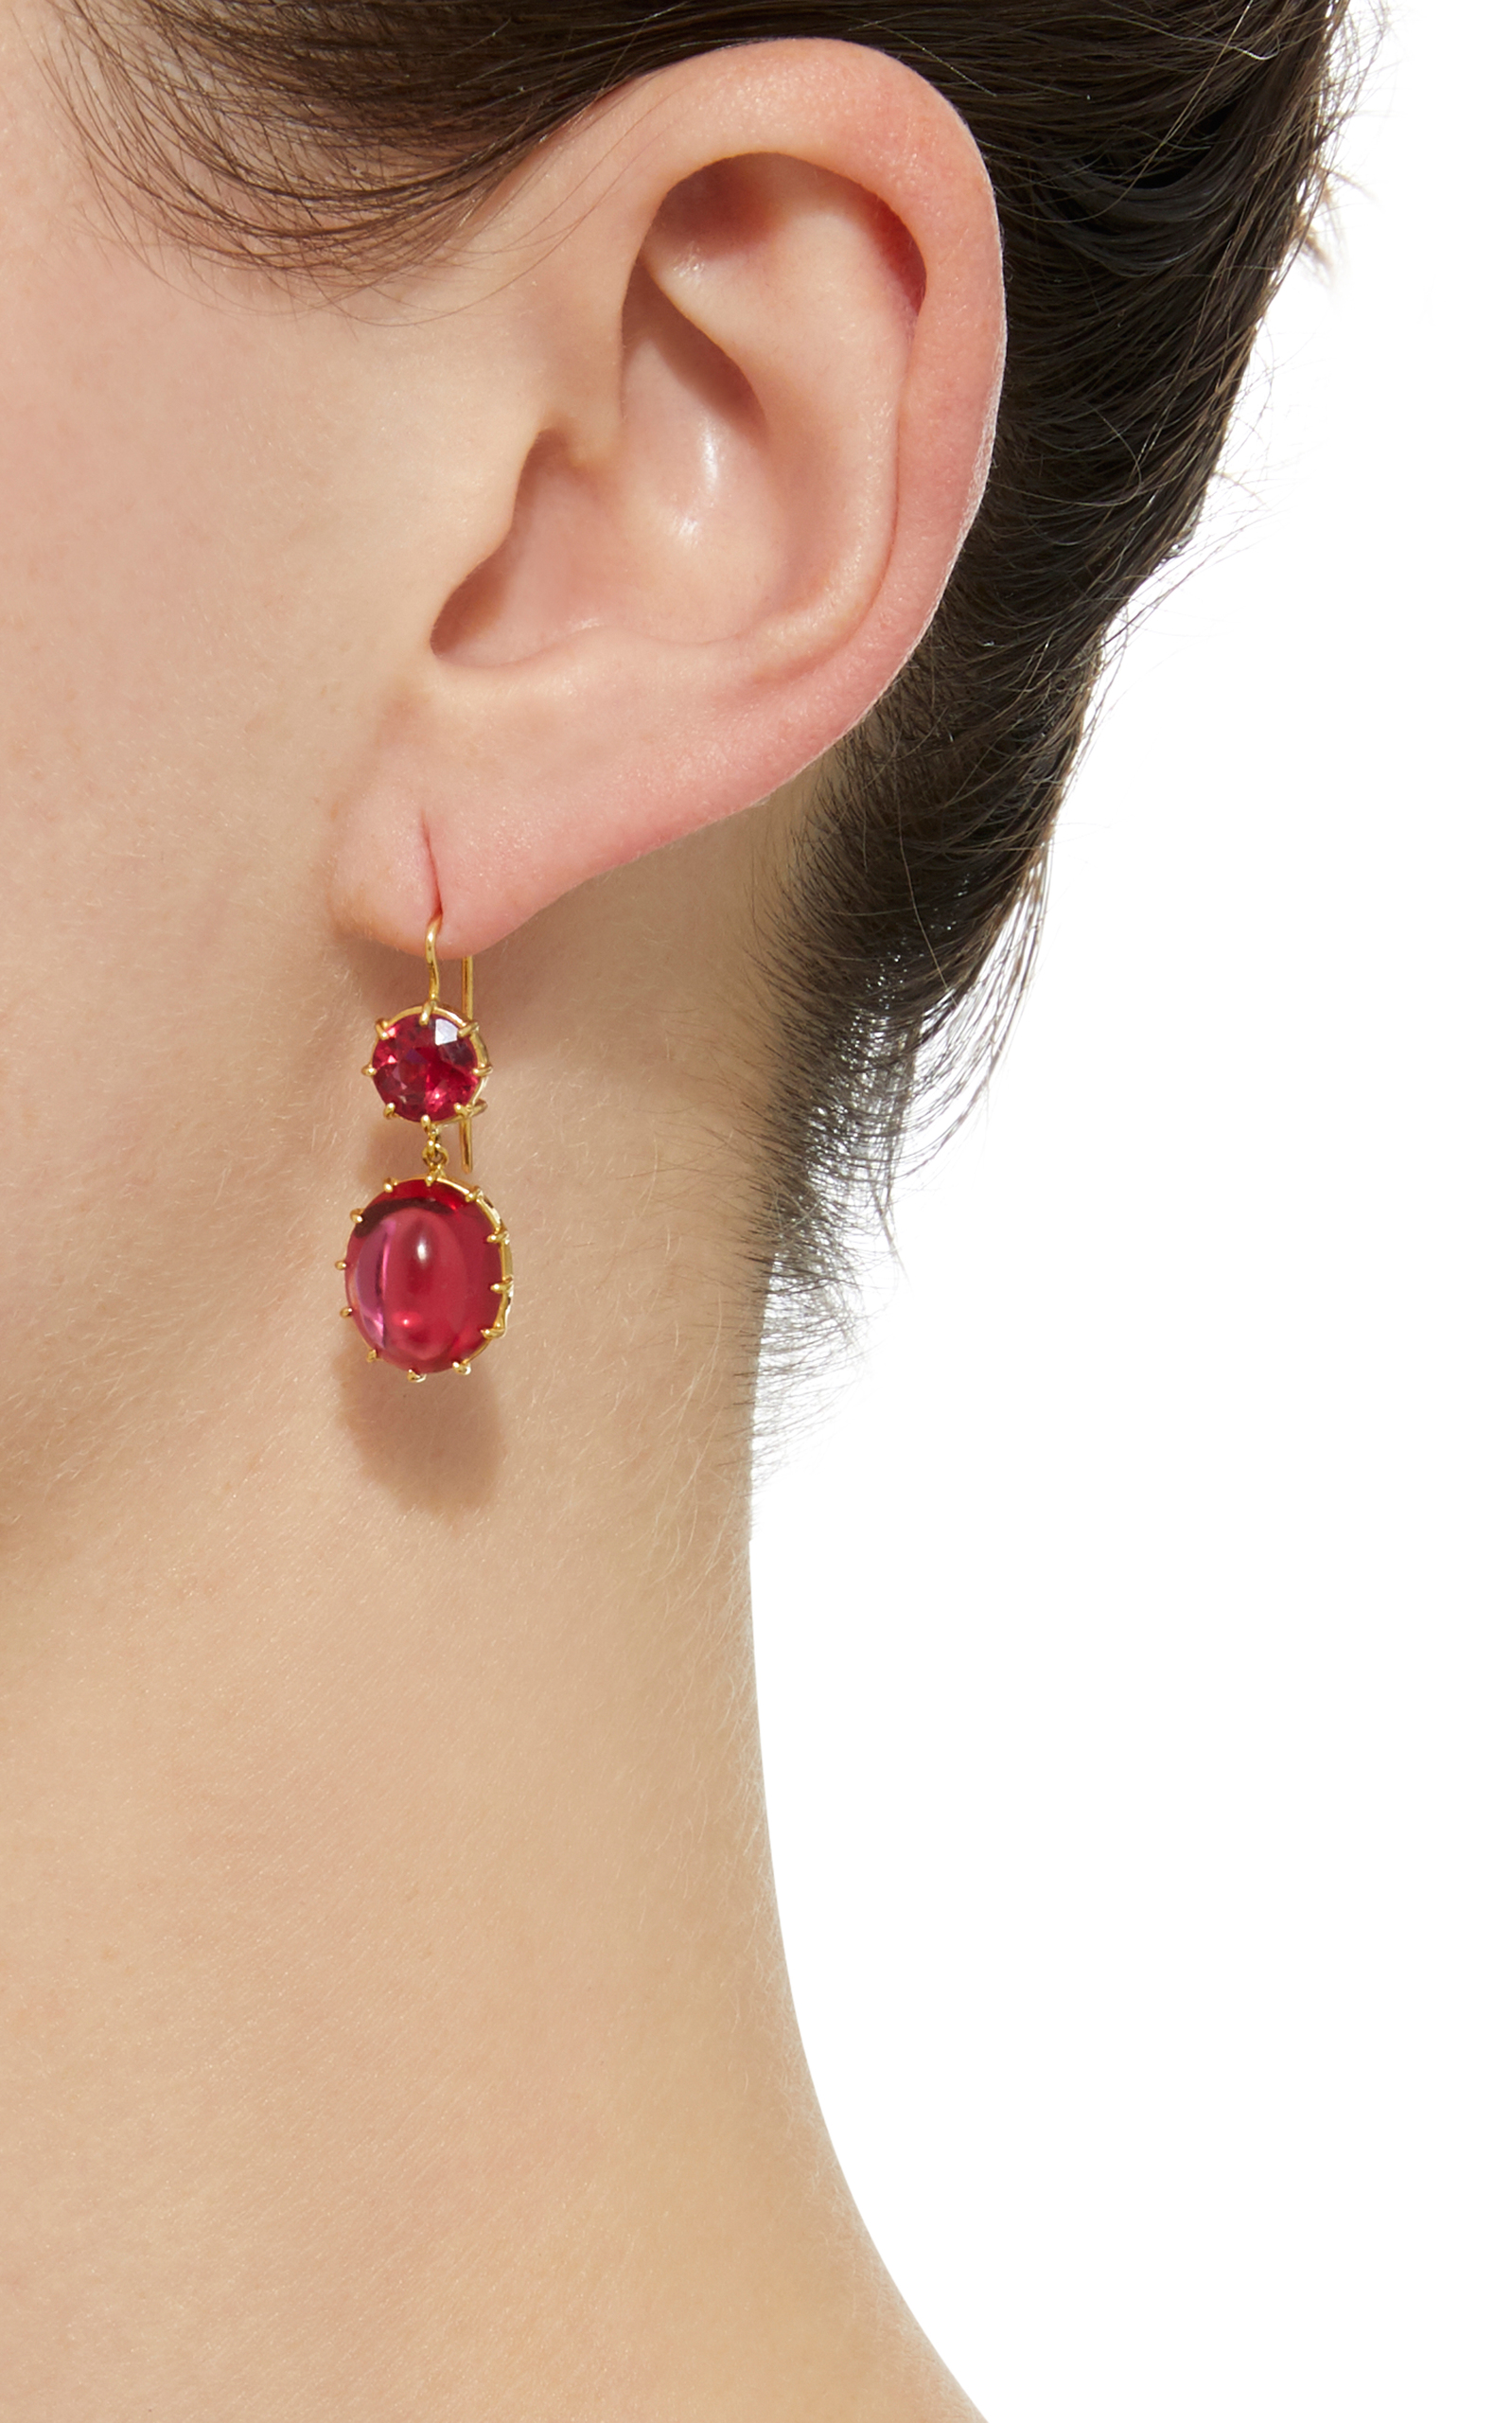 free products ruby lustre earrings urer form jewellery